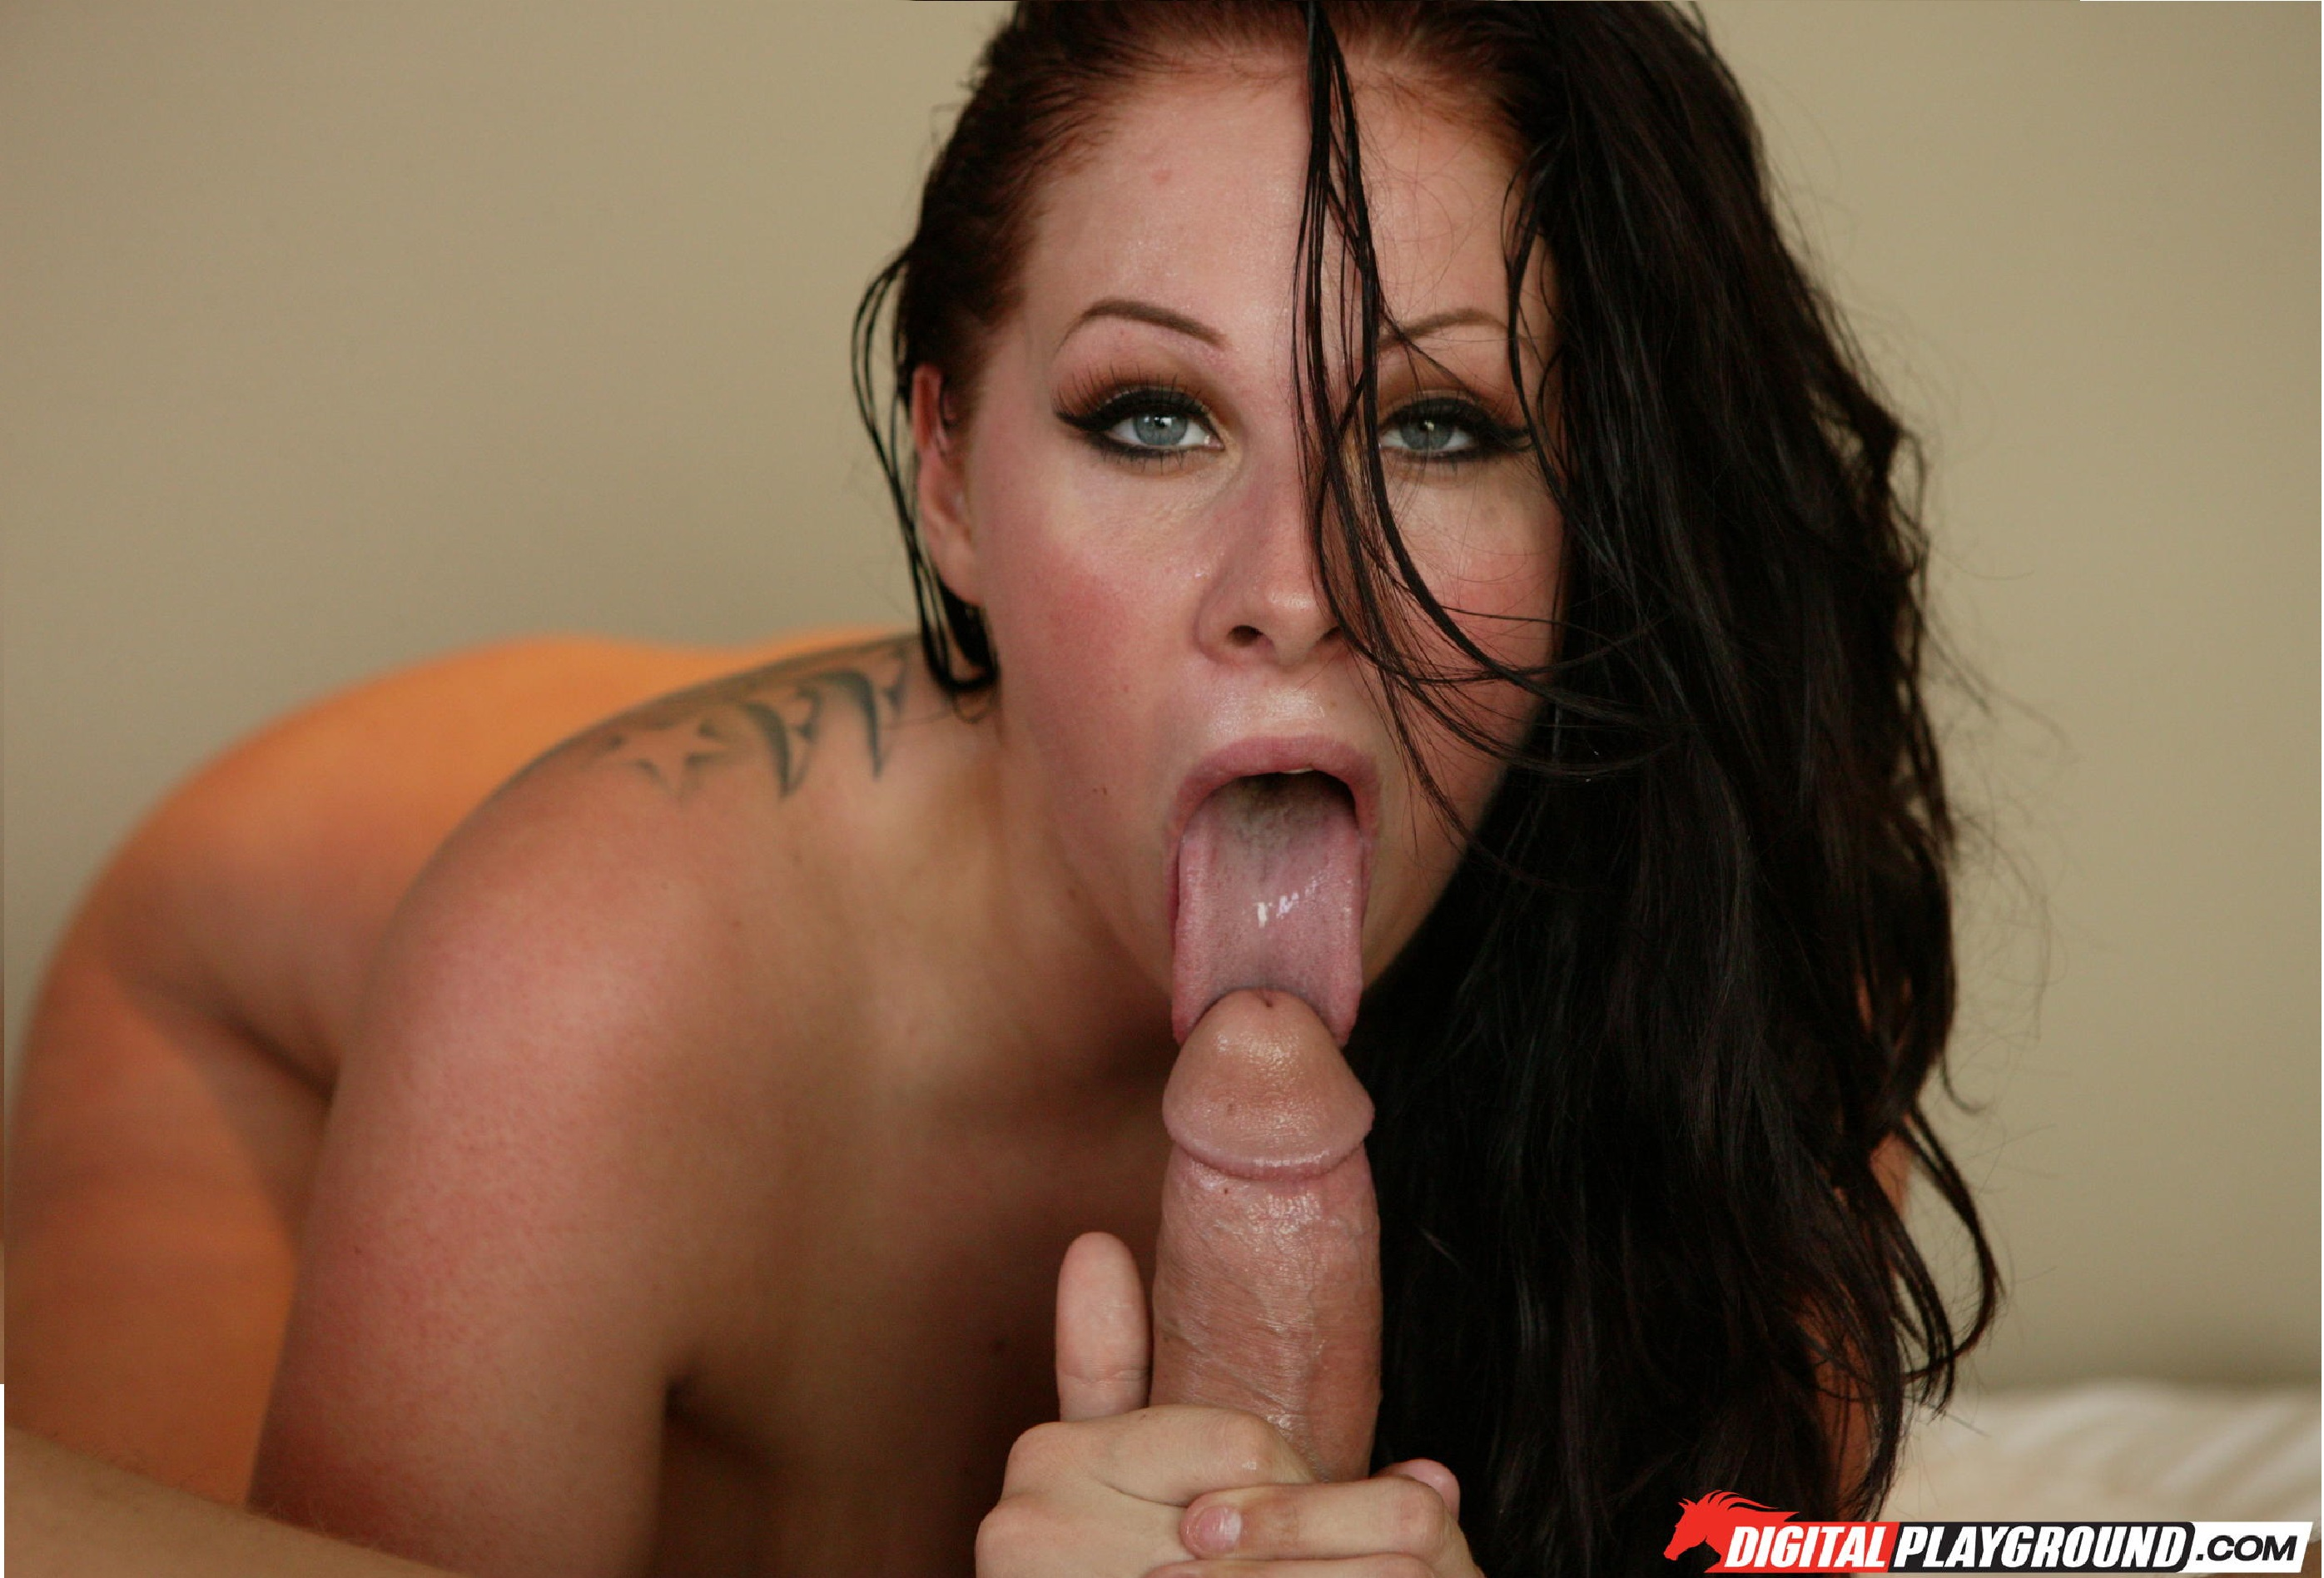 gianna michaels blowjob